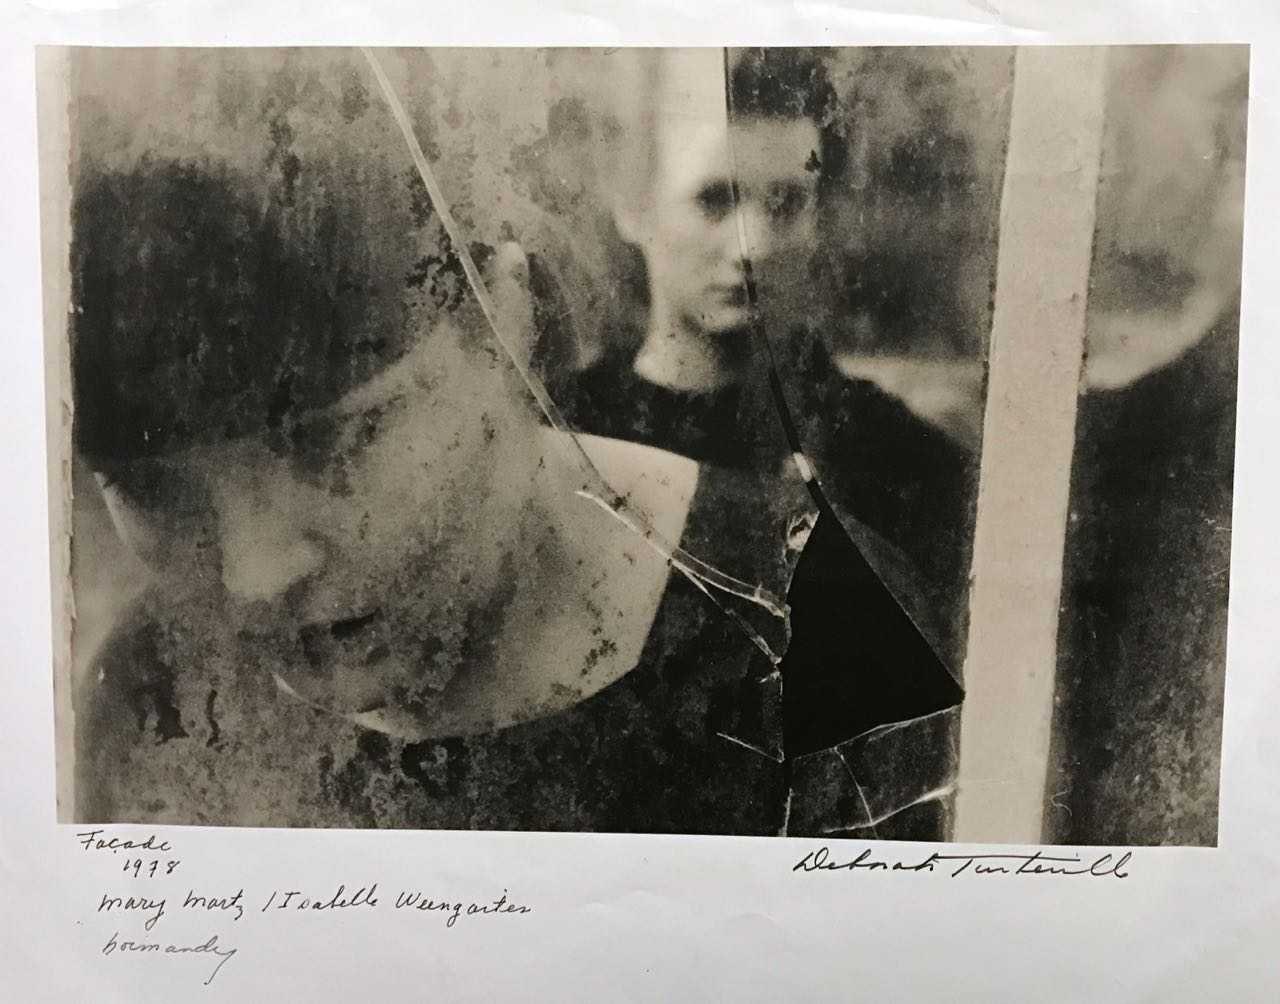 StyleZeitgeist Deborah Turbeville at Deborah Bell Fashion  Turbeville Photography Gallery Exhibit Deborah Turbeville Deborah Bell Art   StyleZeitgeist Deborah Turbeville at Deborah Bell Fashion  Turbeville Photography Gallery Exhibit Deborah Turbeville Deborah Bell Art